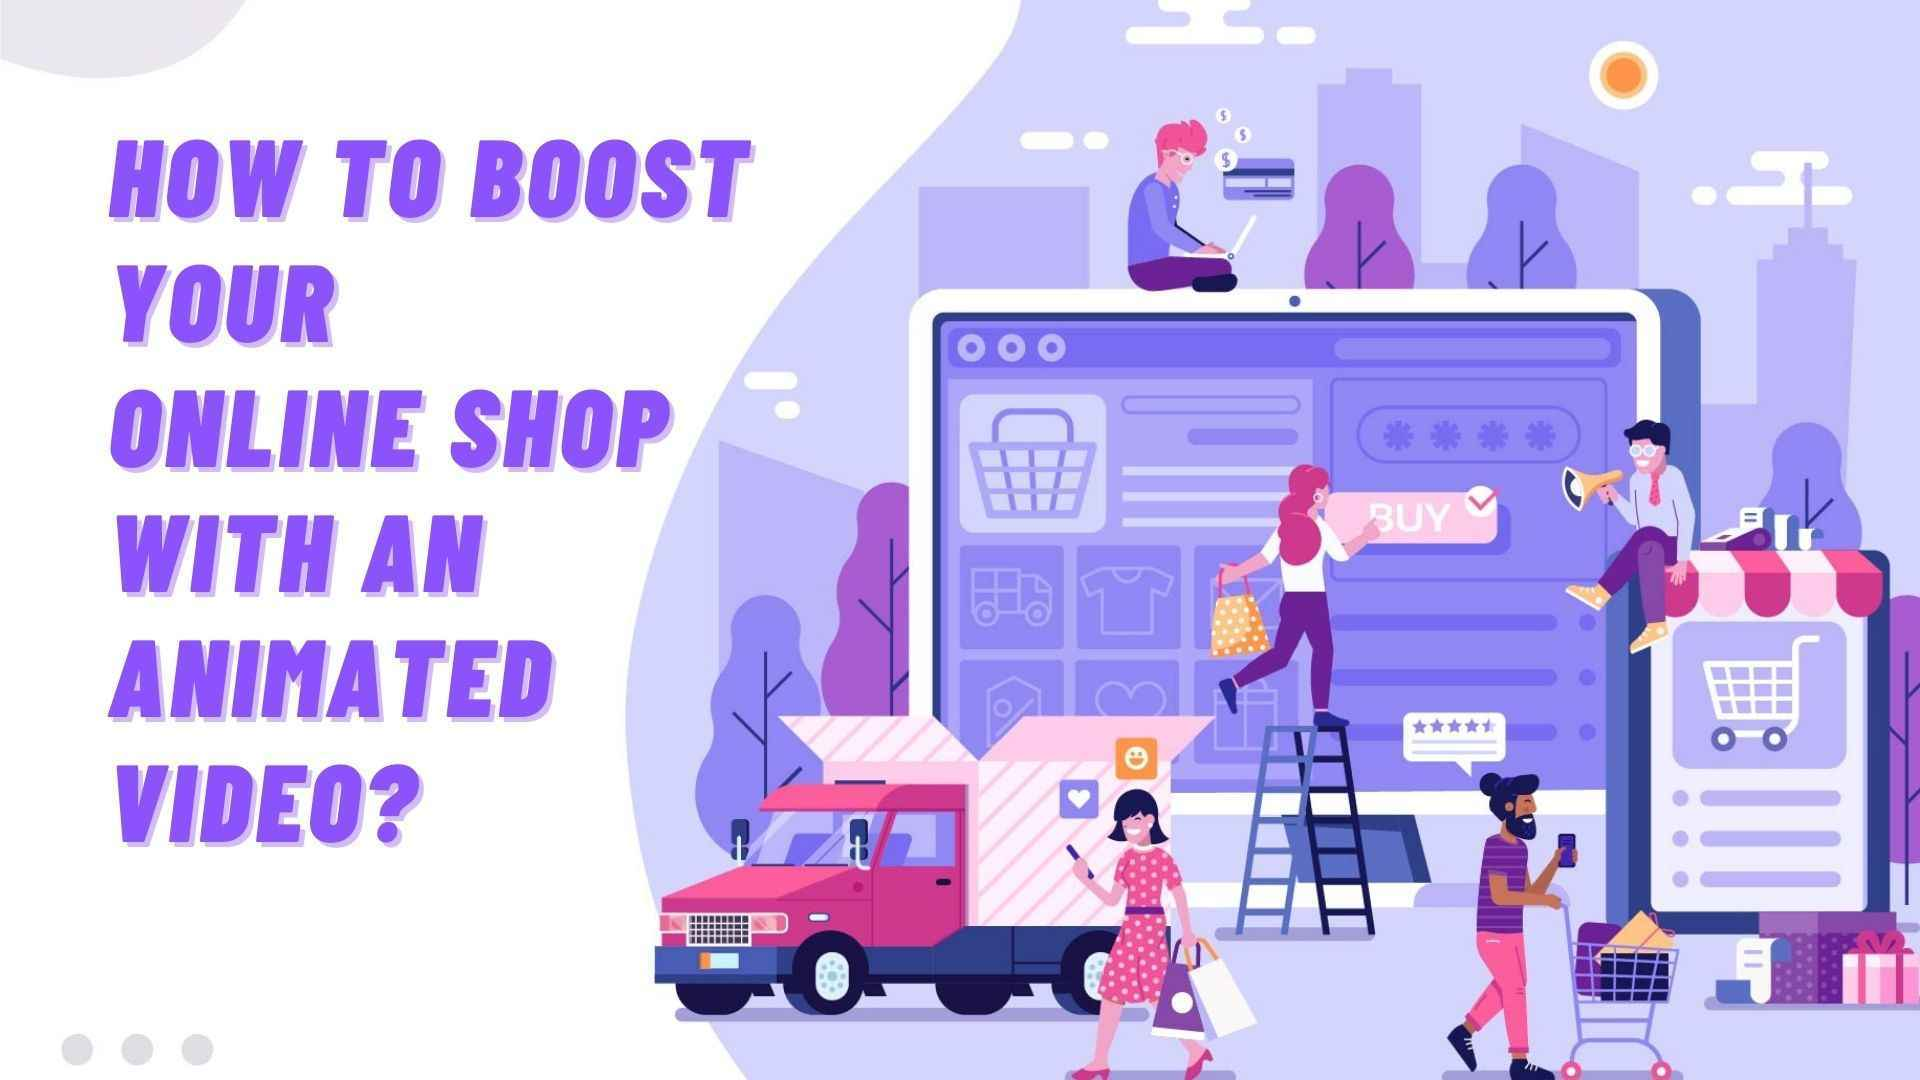 Boost your online shop with an animated video